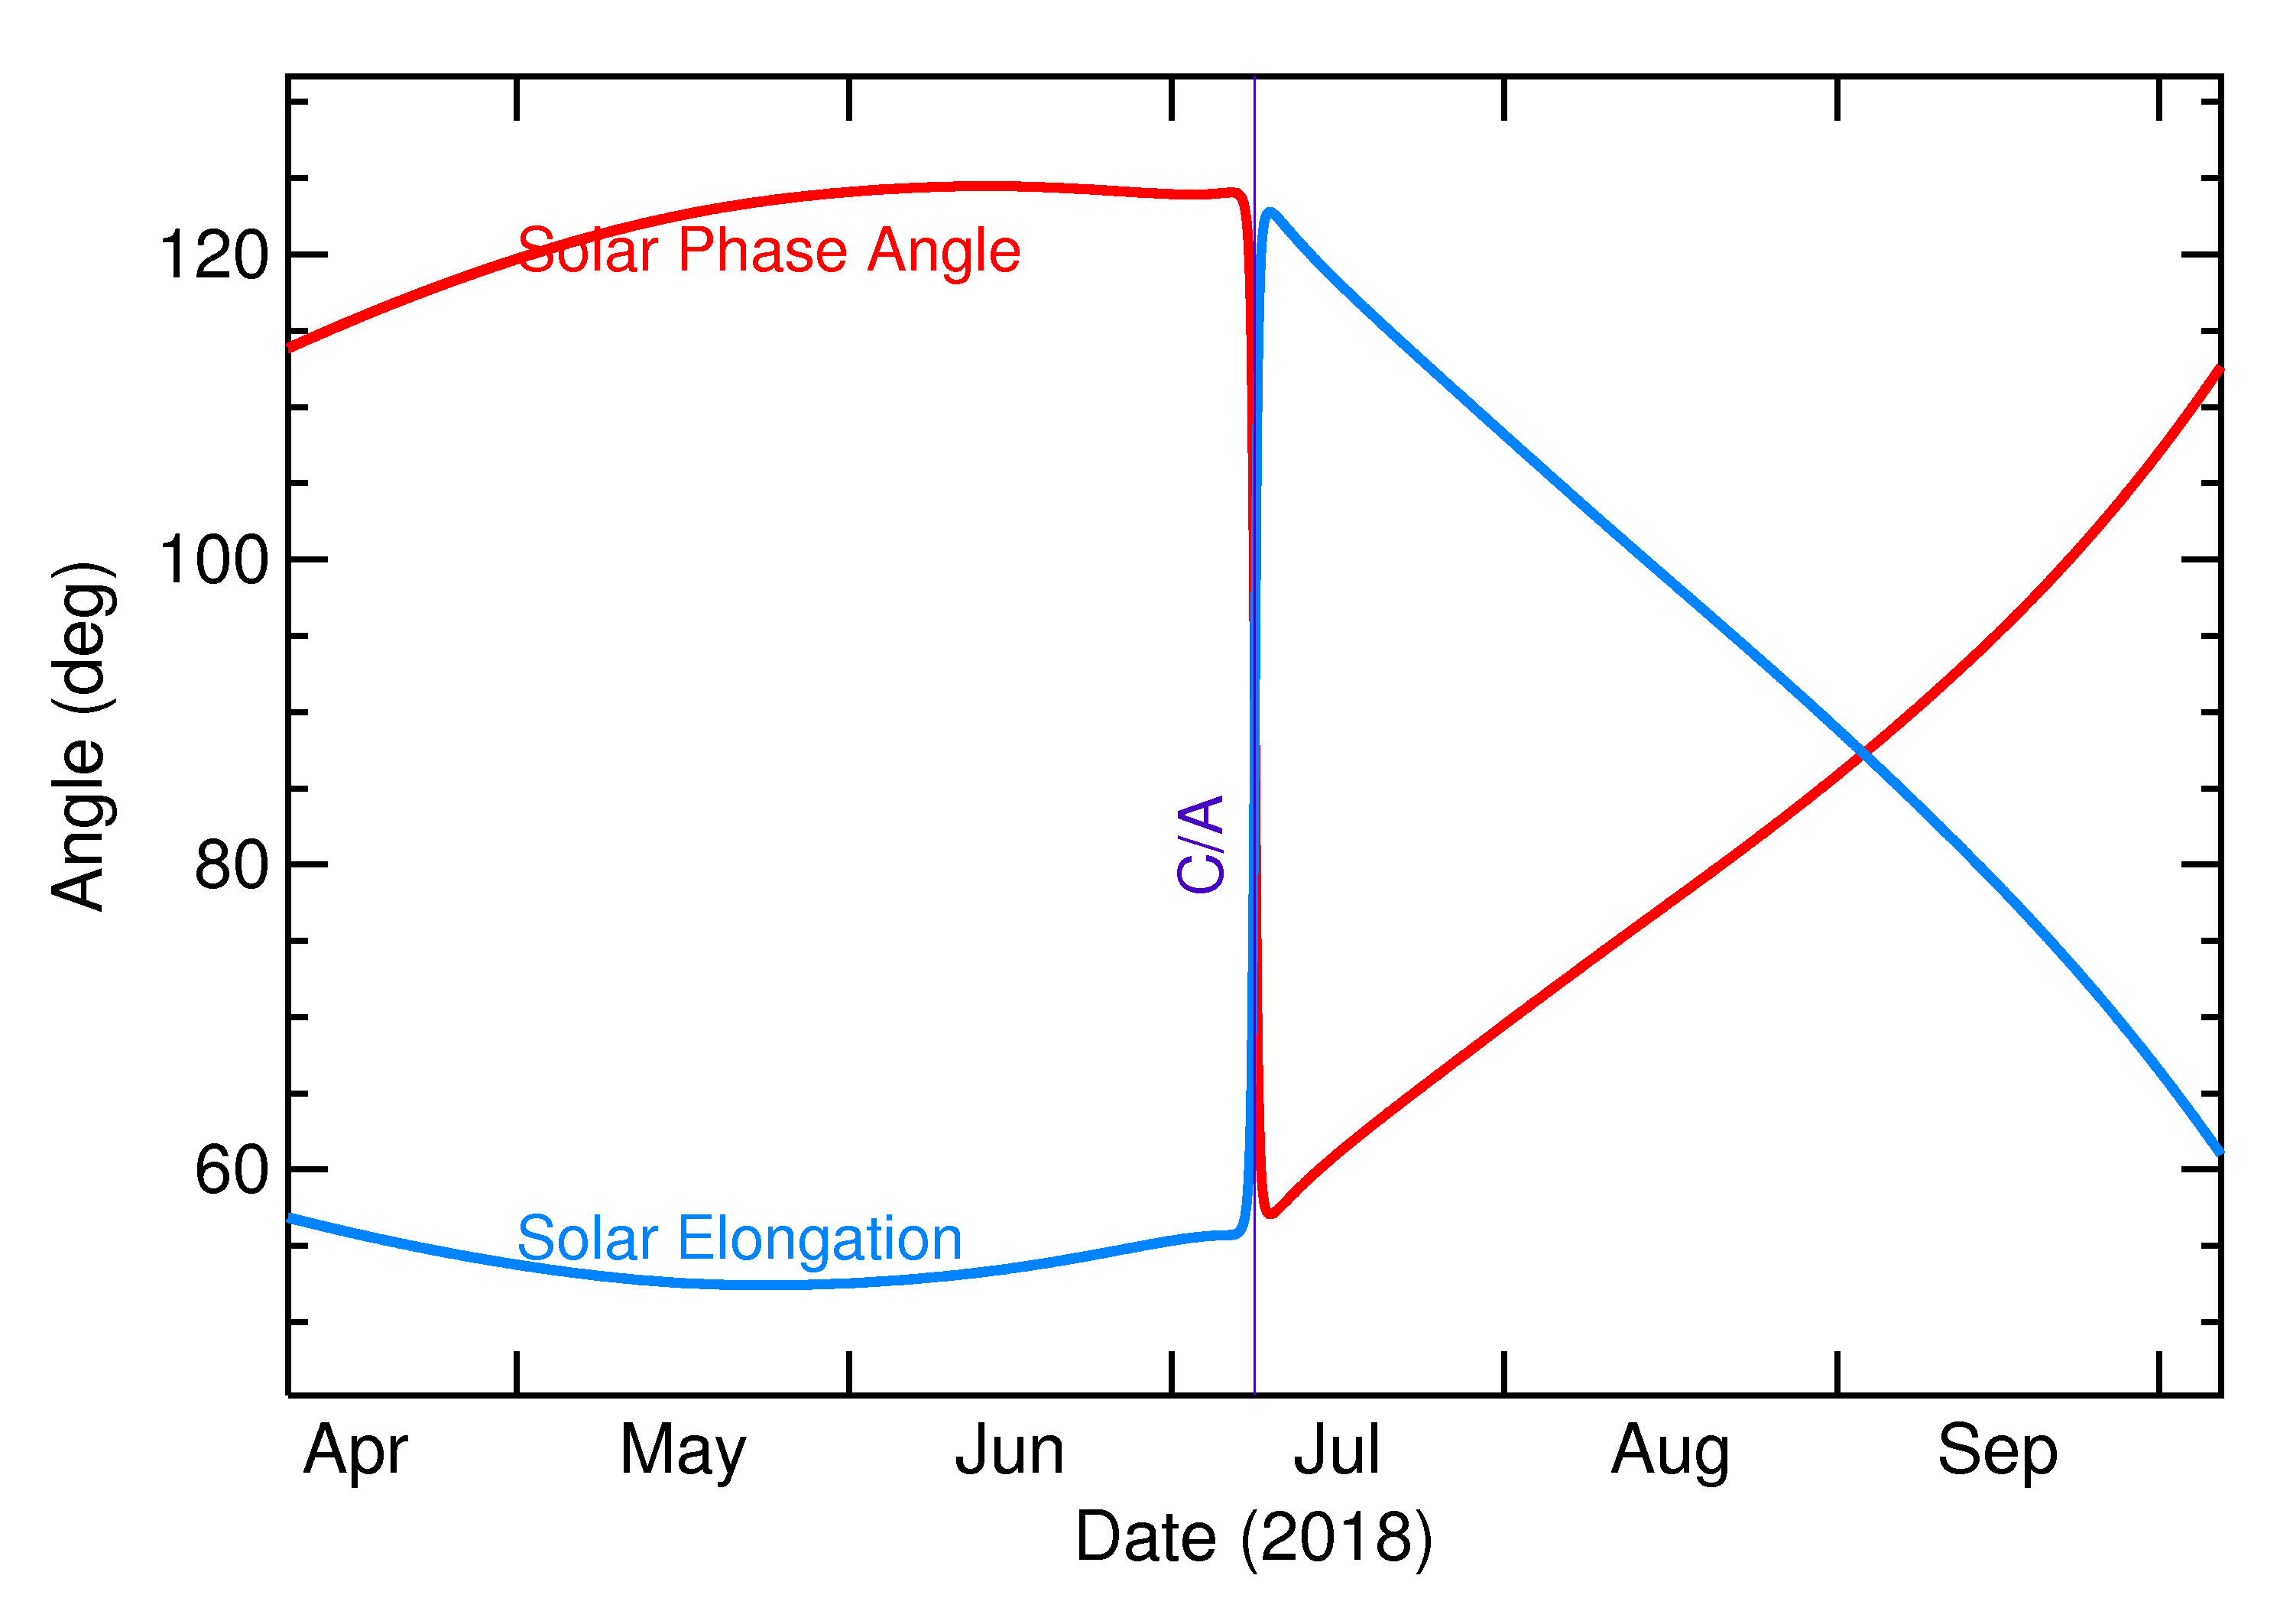 Solar Elongation and Solar Phase Angle of 2018 NX in the months around closest approach